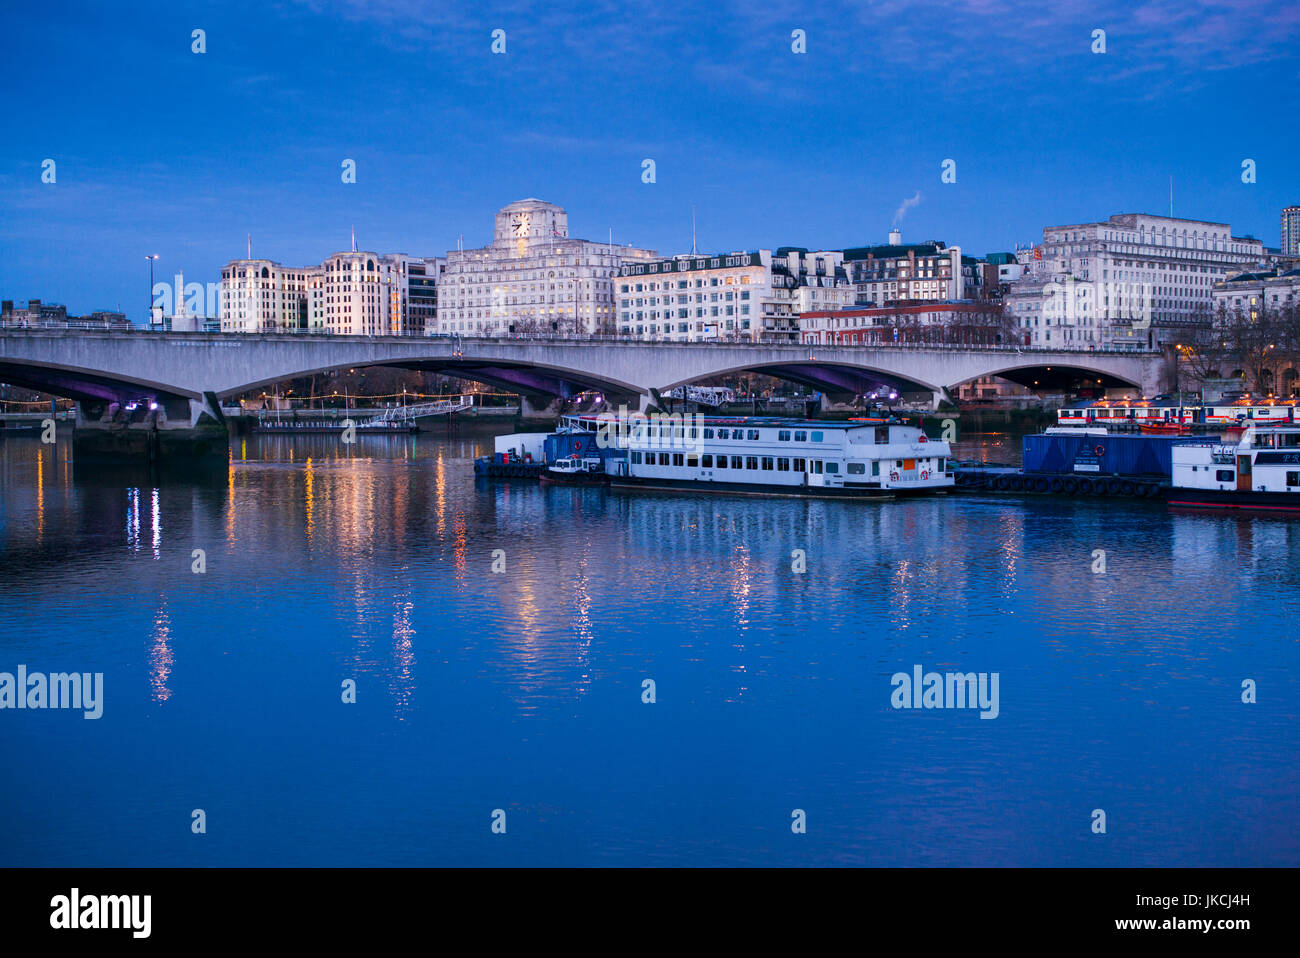 England, London, Victoria Embankment, buildings by Waterloo Bridge and Thames River, dawn - Stock Image